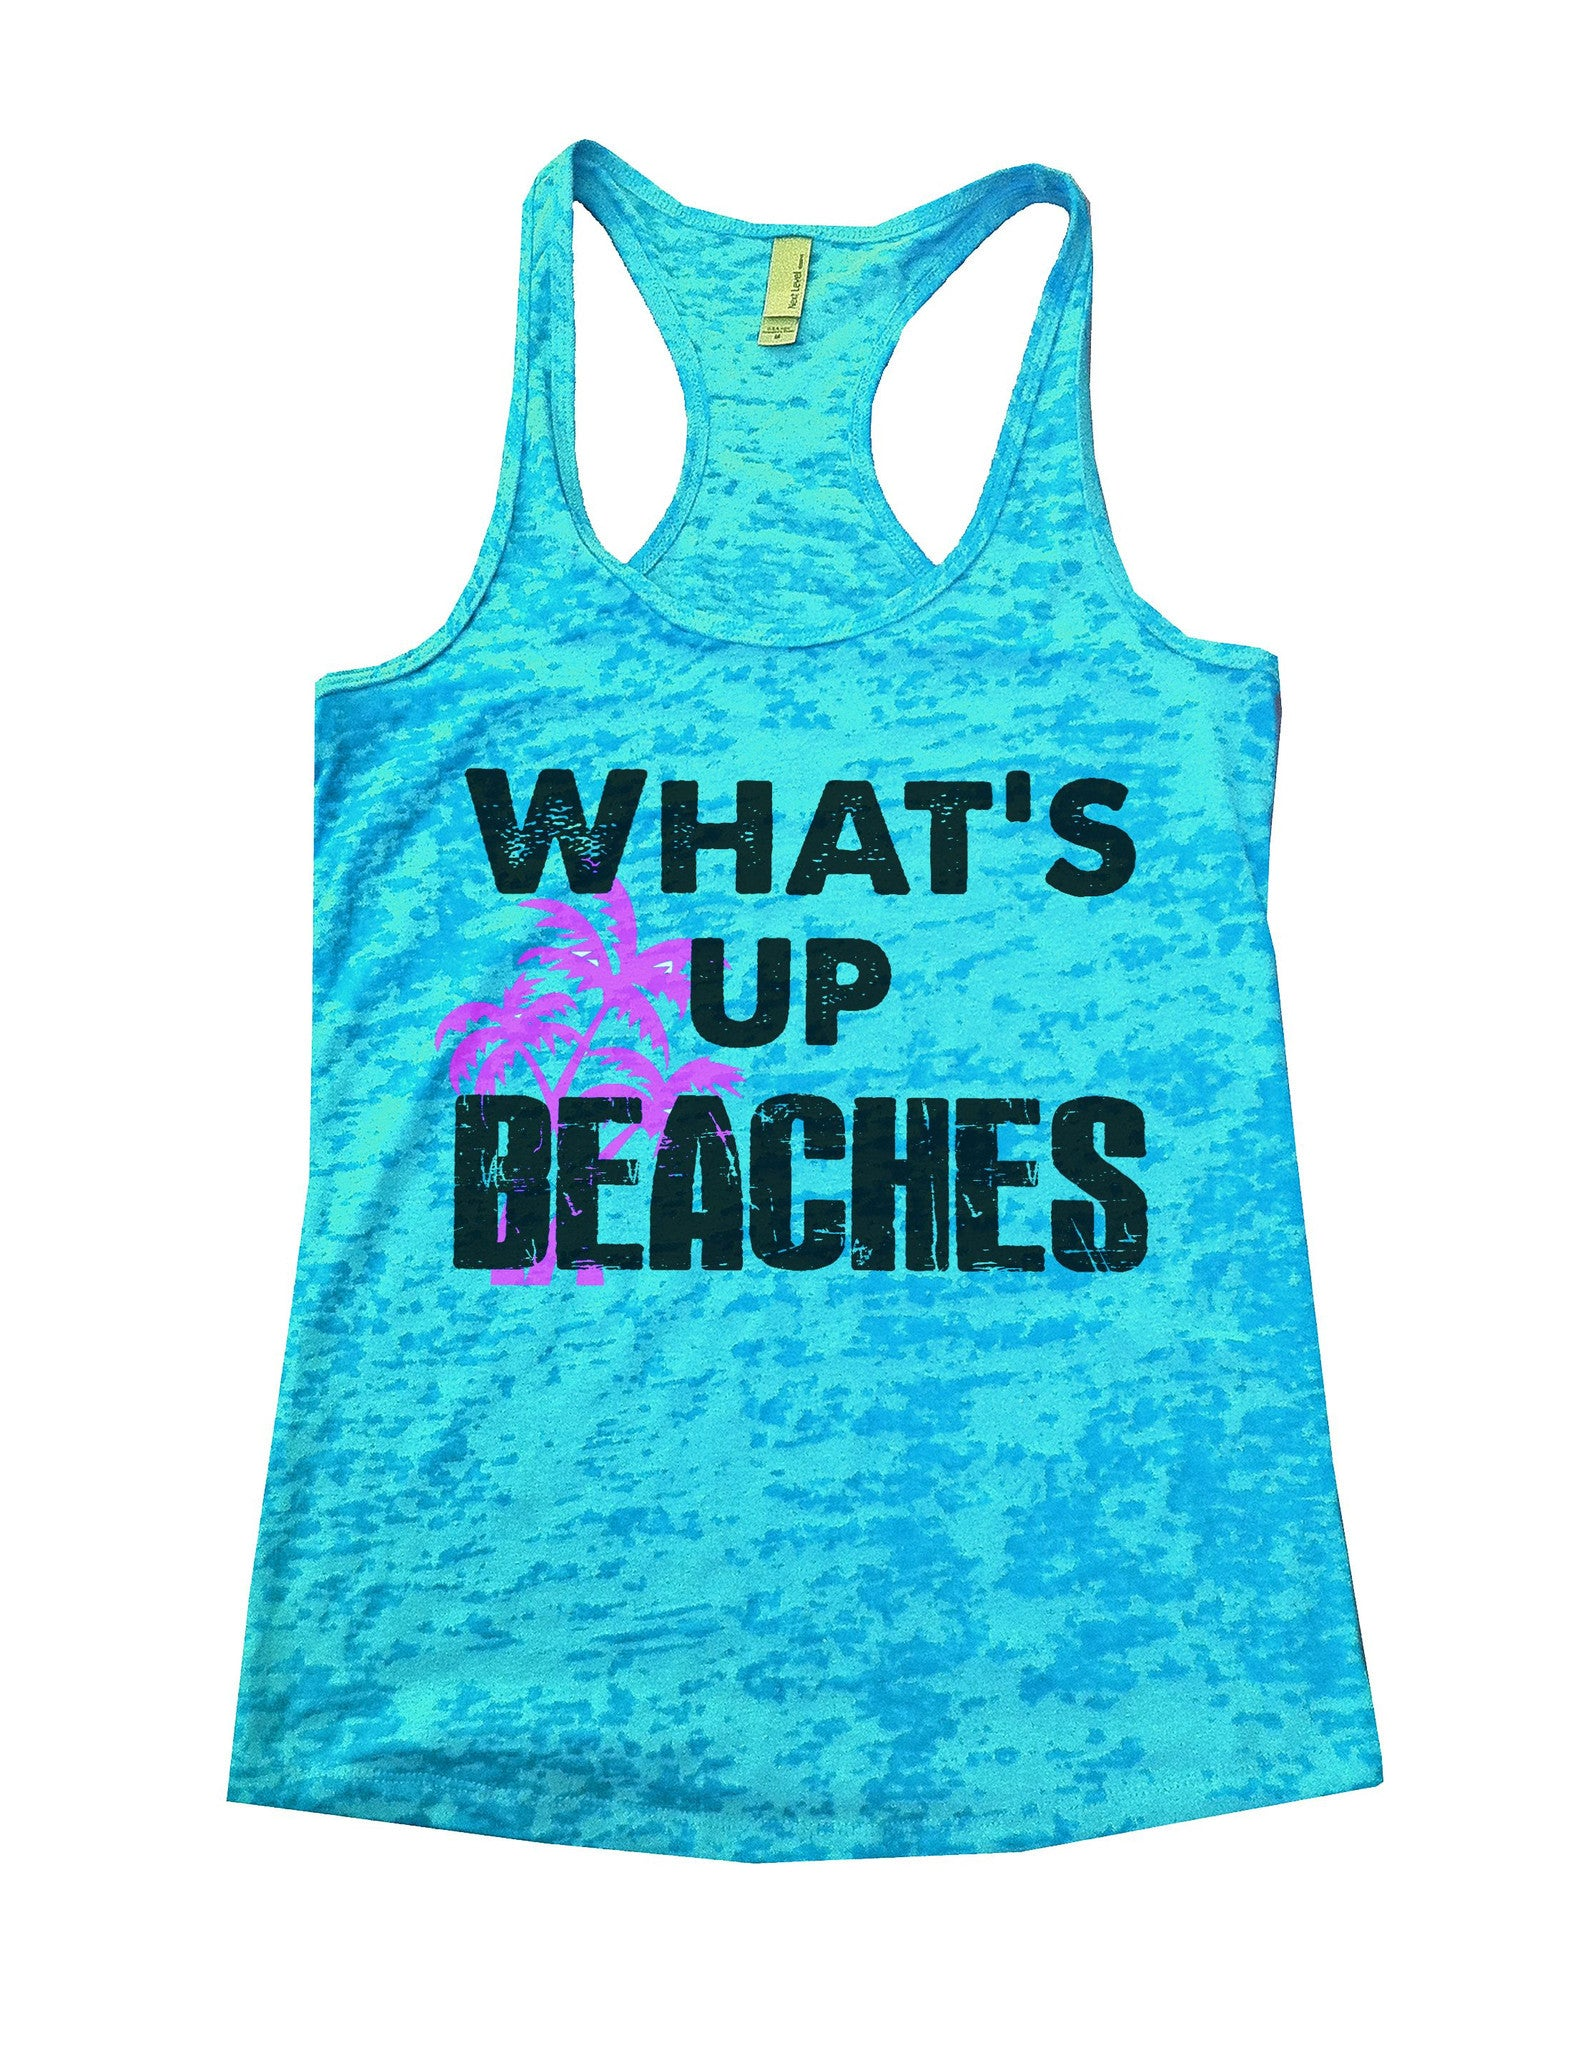 What'S Up Beaches Burnout Tank Top By BurnoutTankTops.com - 759 - Funny Shirts Tank Tops Burnouts and Triblends  - 4